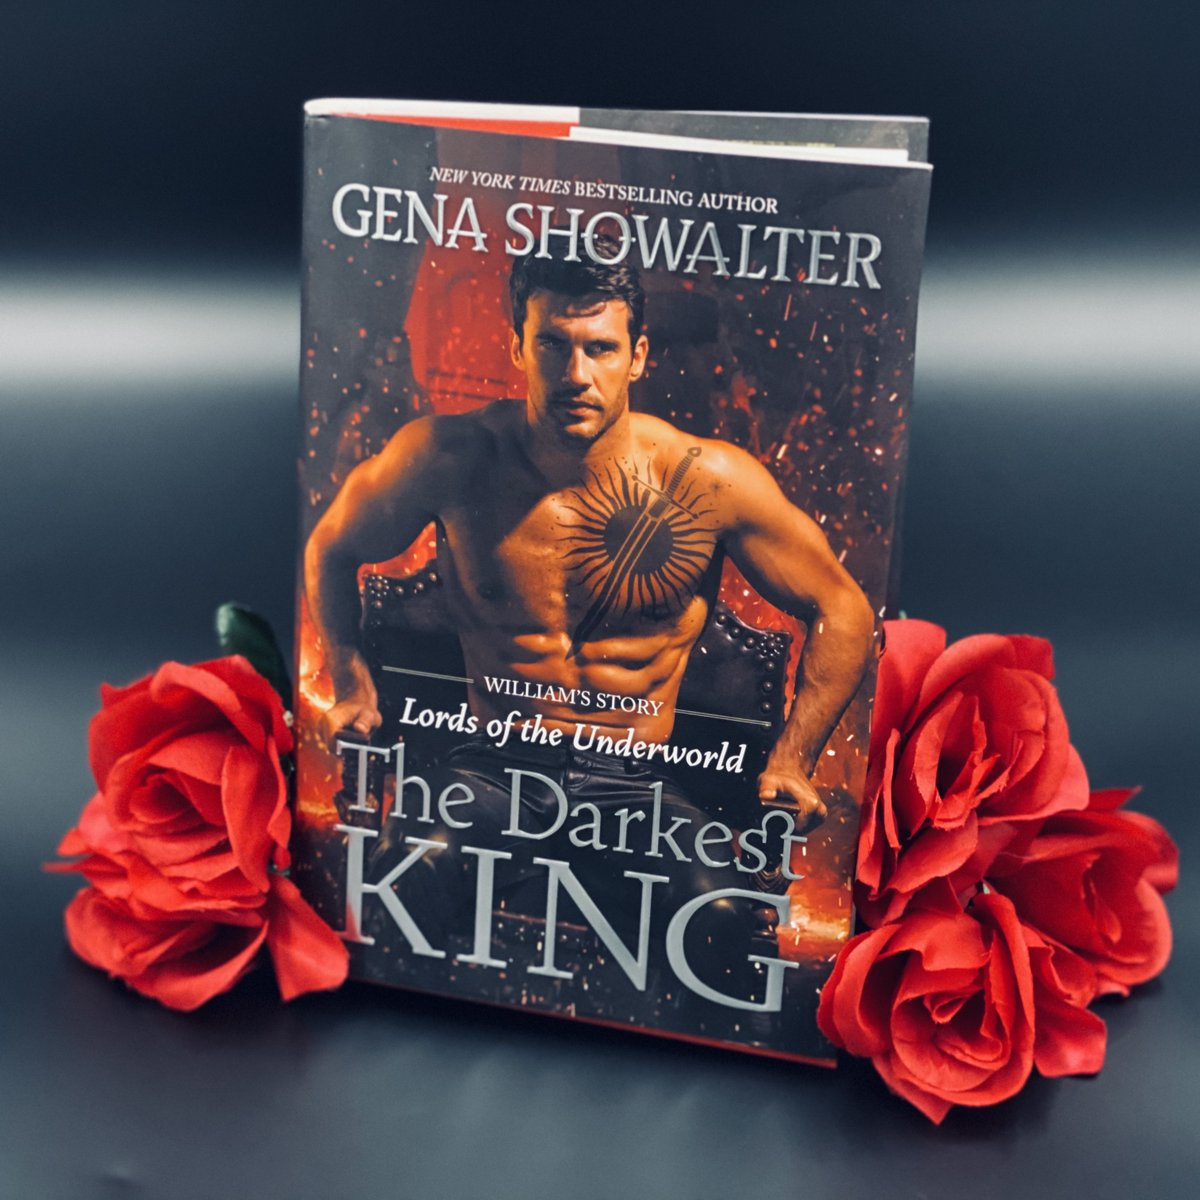 What are you most looking forward to discover in The Darkest King? William's relationship with Axel? William's origins? His curse? Sunny? #9days   Kindle:  iBooks:  Nook:  Kobo: